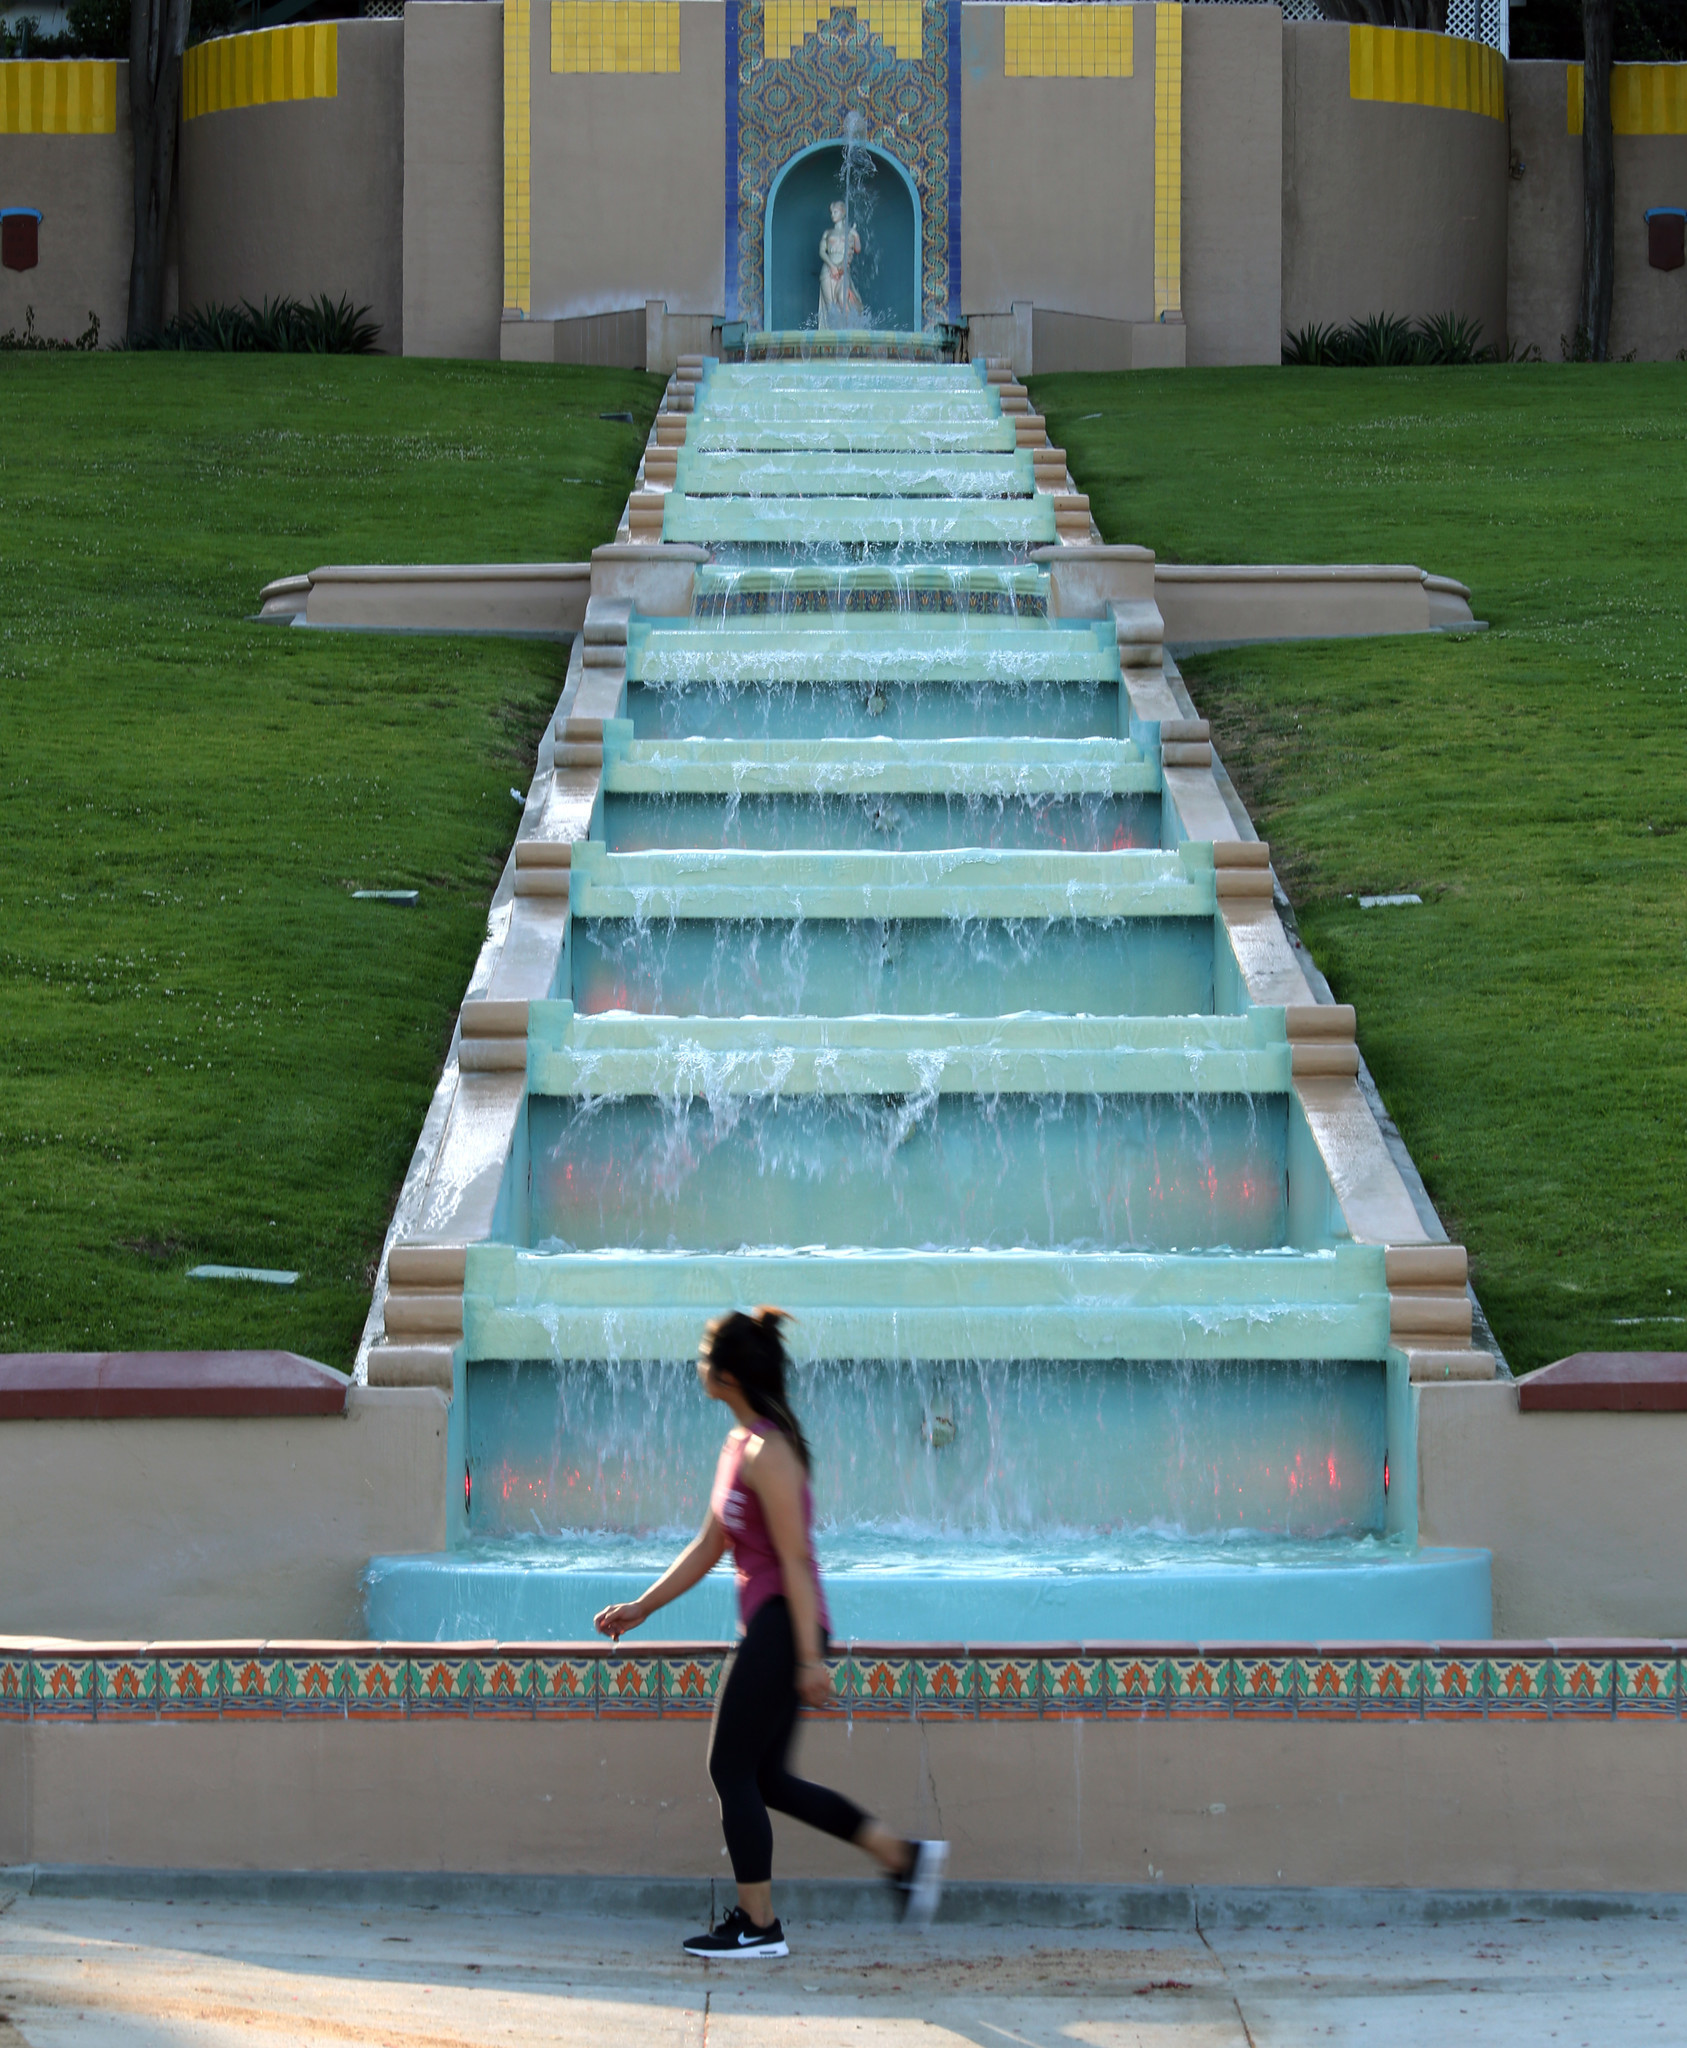 The multi-tiered fountain and the Athena statue that tops it are nostalgic reminders of the city's grand past, when a Greek developer named Peter Snyder decided to build Midwick View Estates, a luxury community of Spanish and Mediterranean style homes.